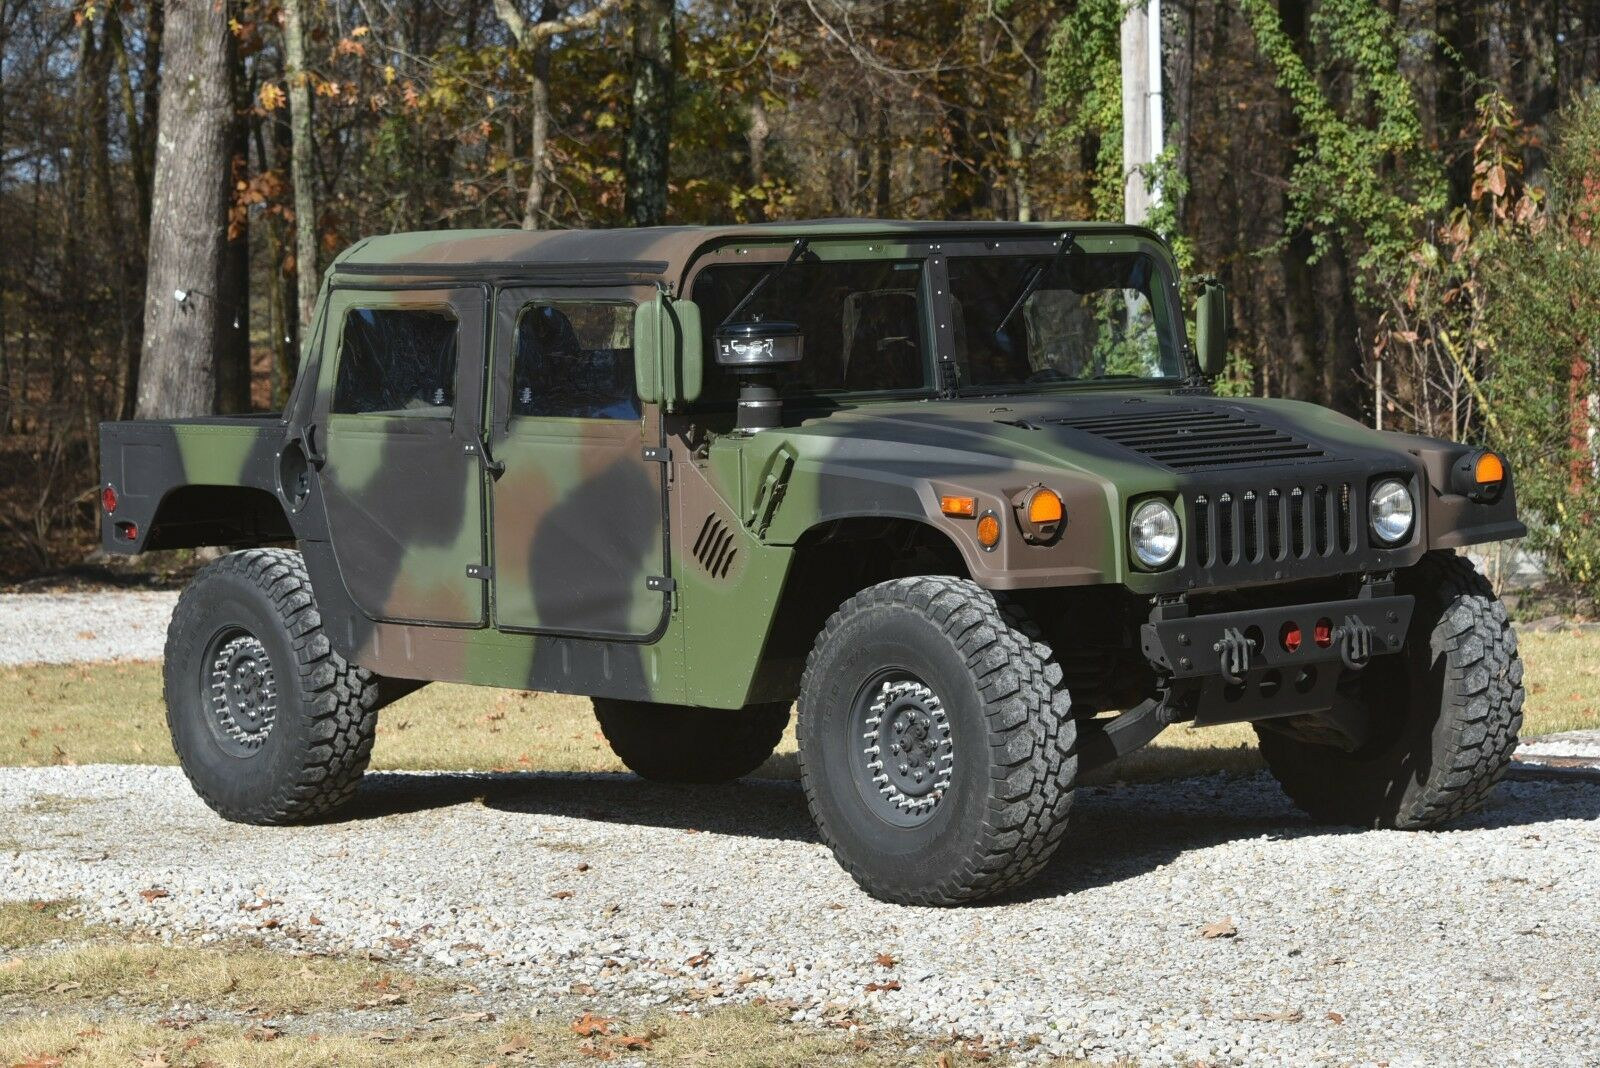 1980 Hummer H1 Blair Outlan 901-378-8877 Duramax HMMWV Humvee Frame off conversion Super Clean Done Correctly!